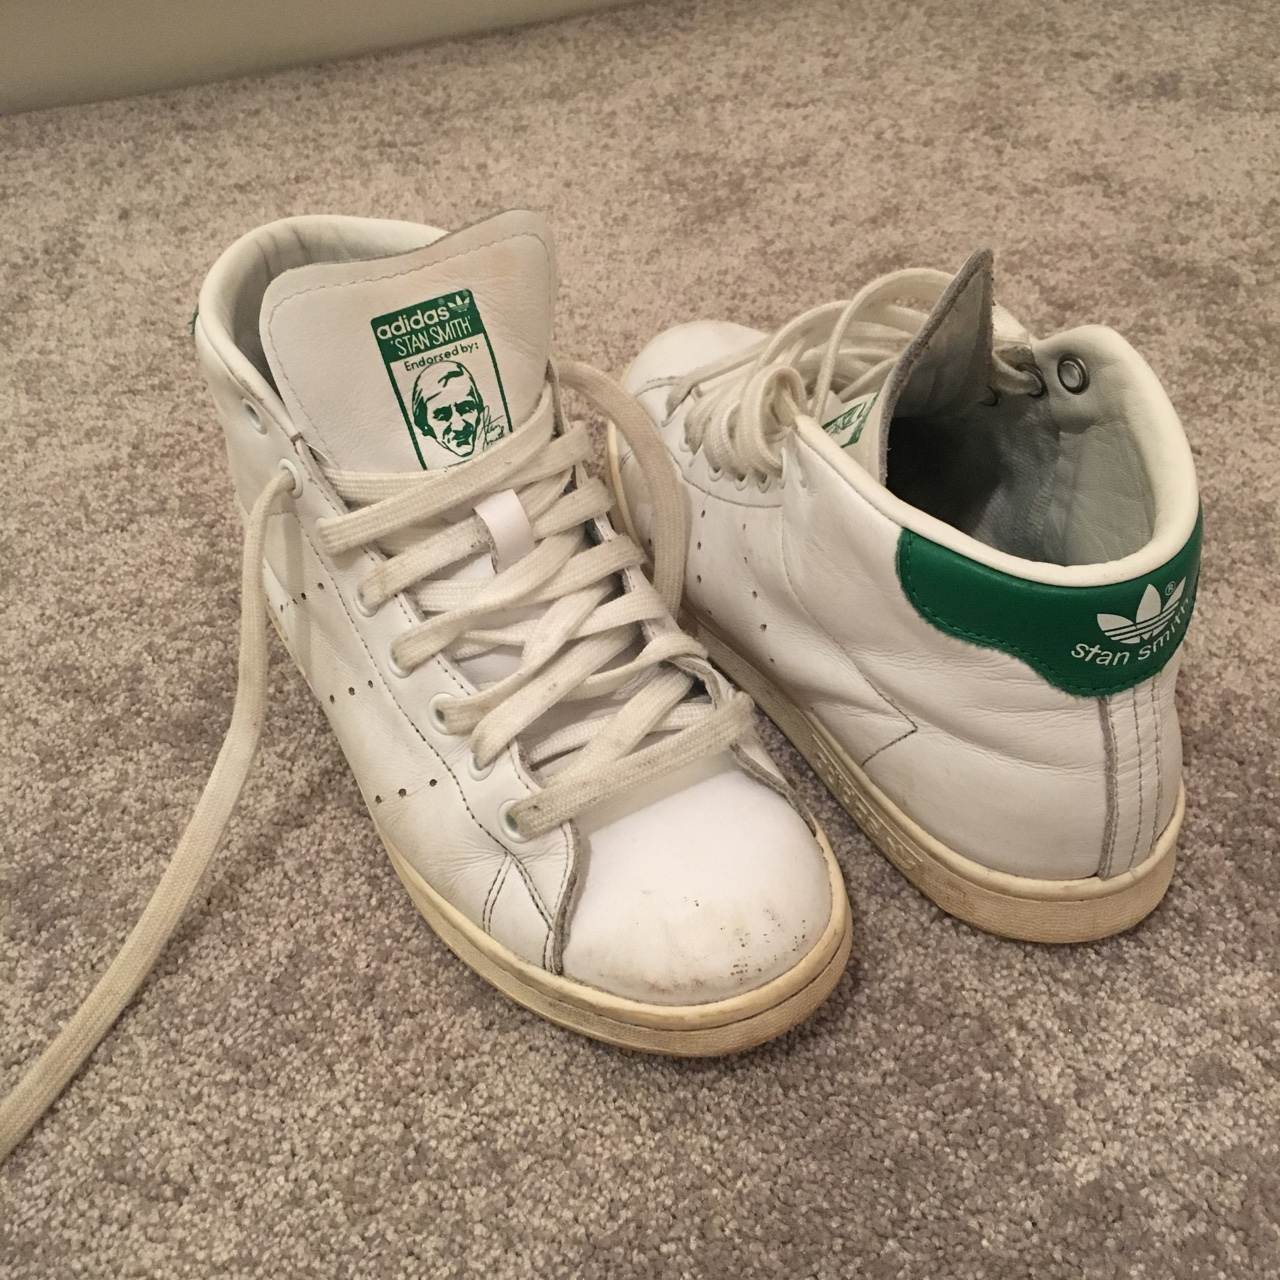 ADIDAS STAN SMITH HIGH TOPS worn but